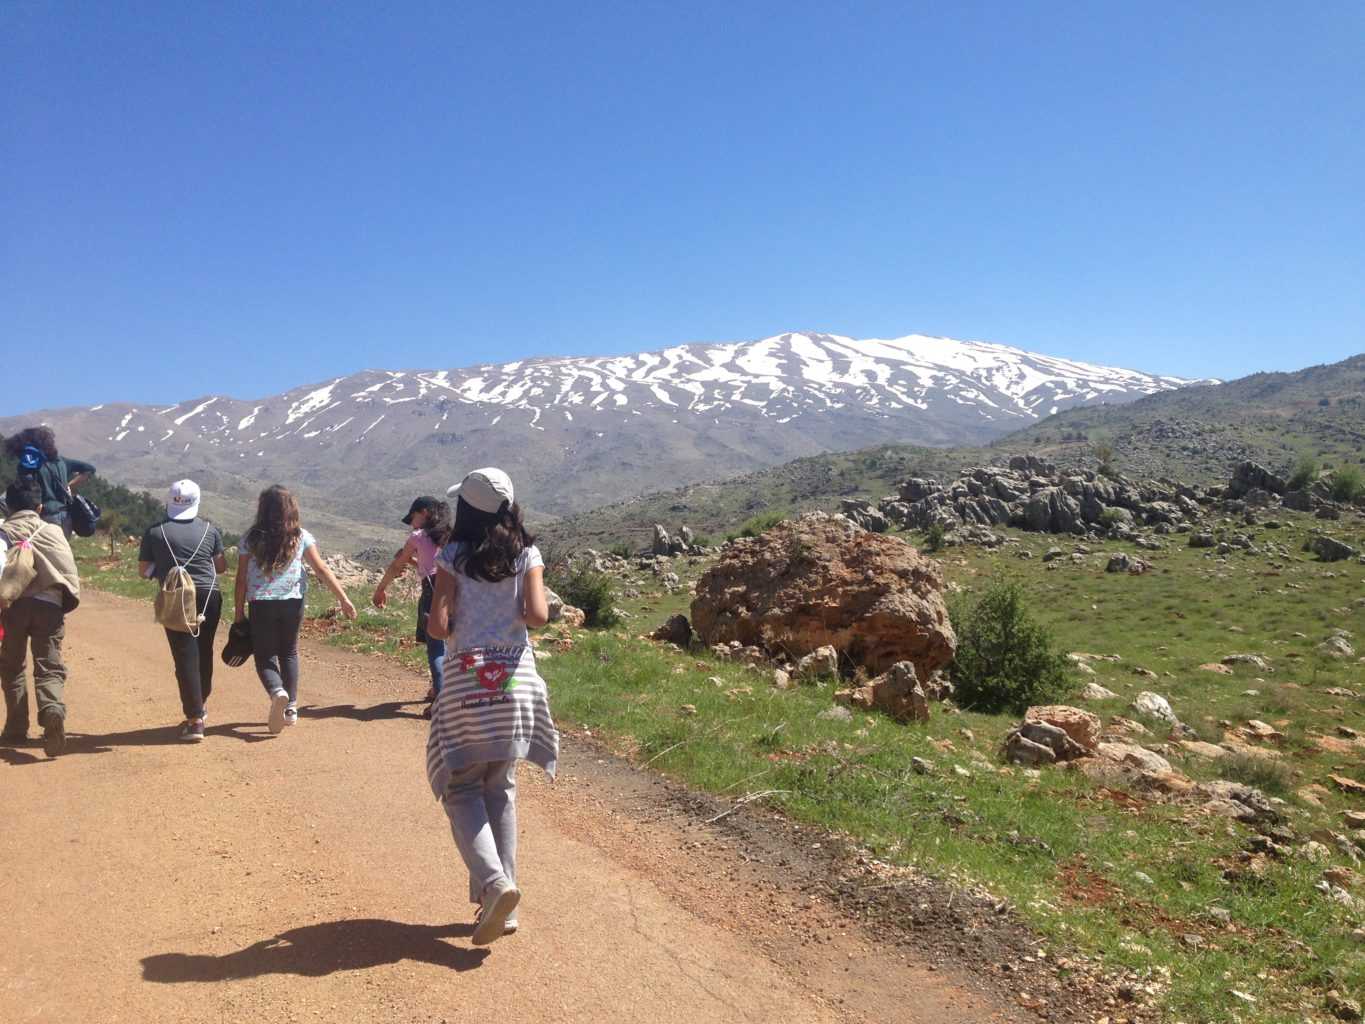 Hike the length of Lebanon with the country's longest mountain trail | The Switchers